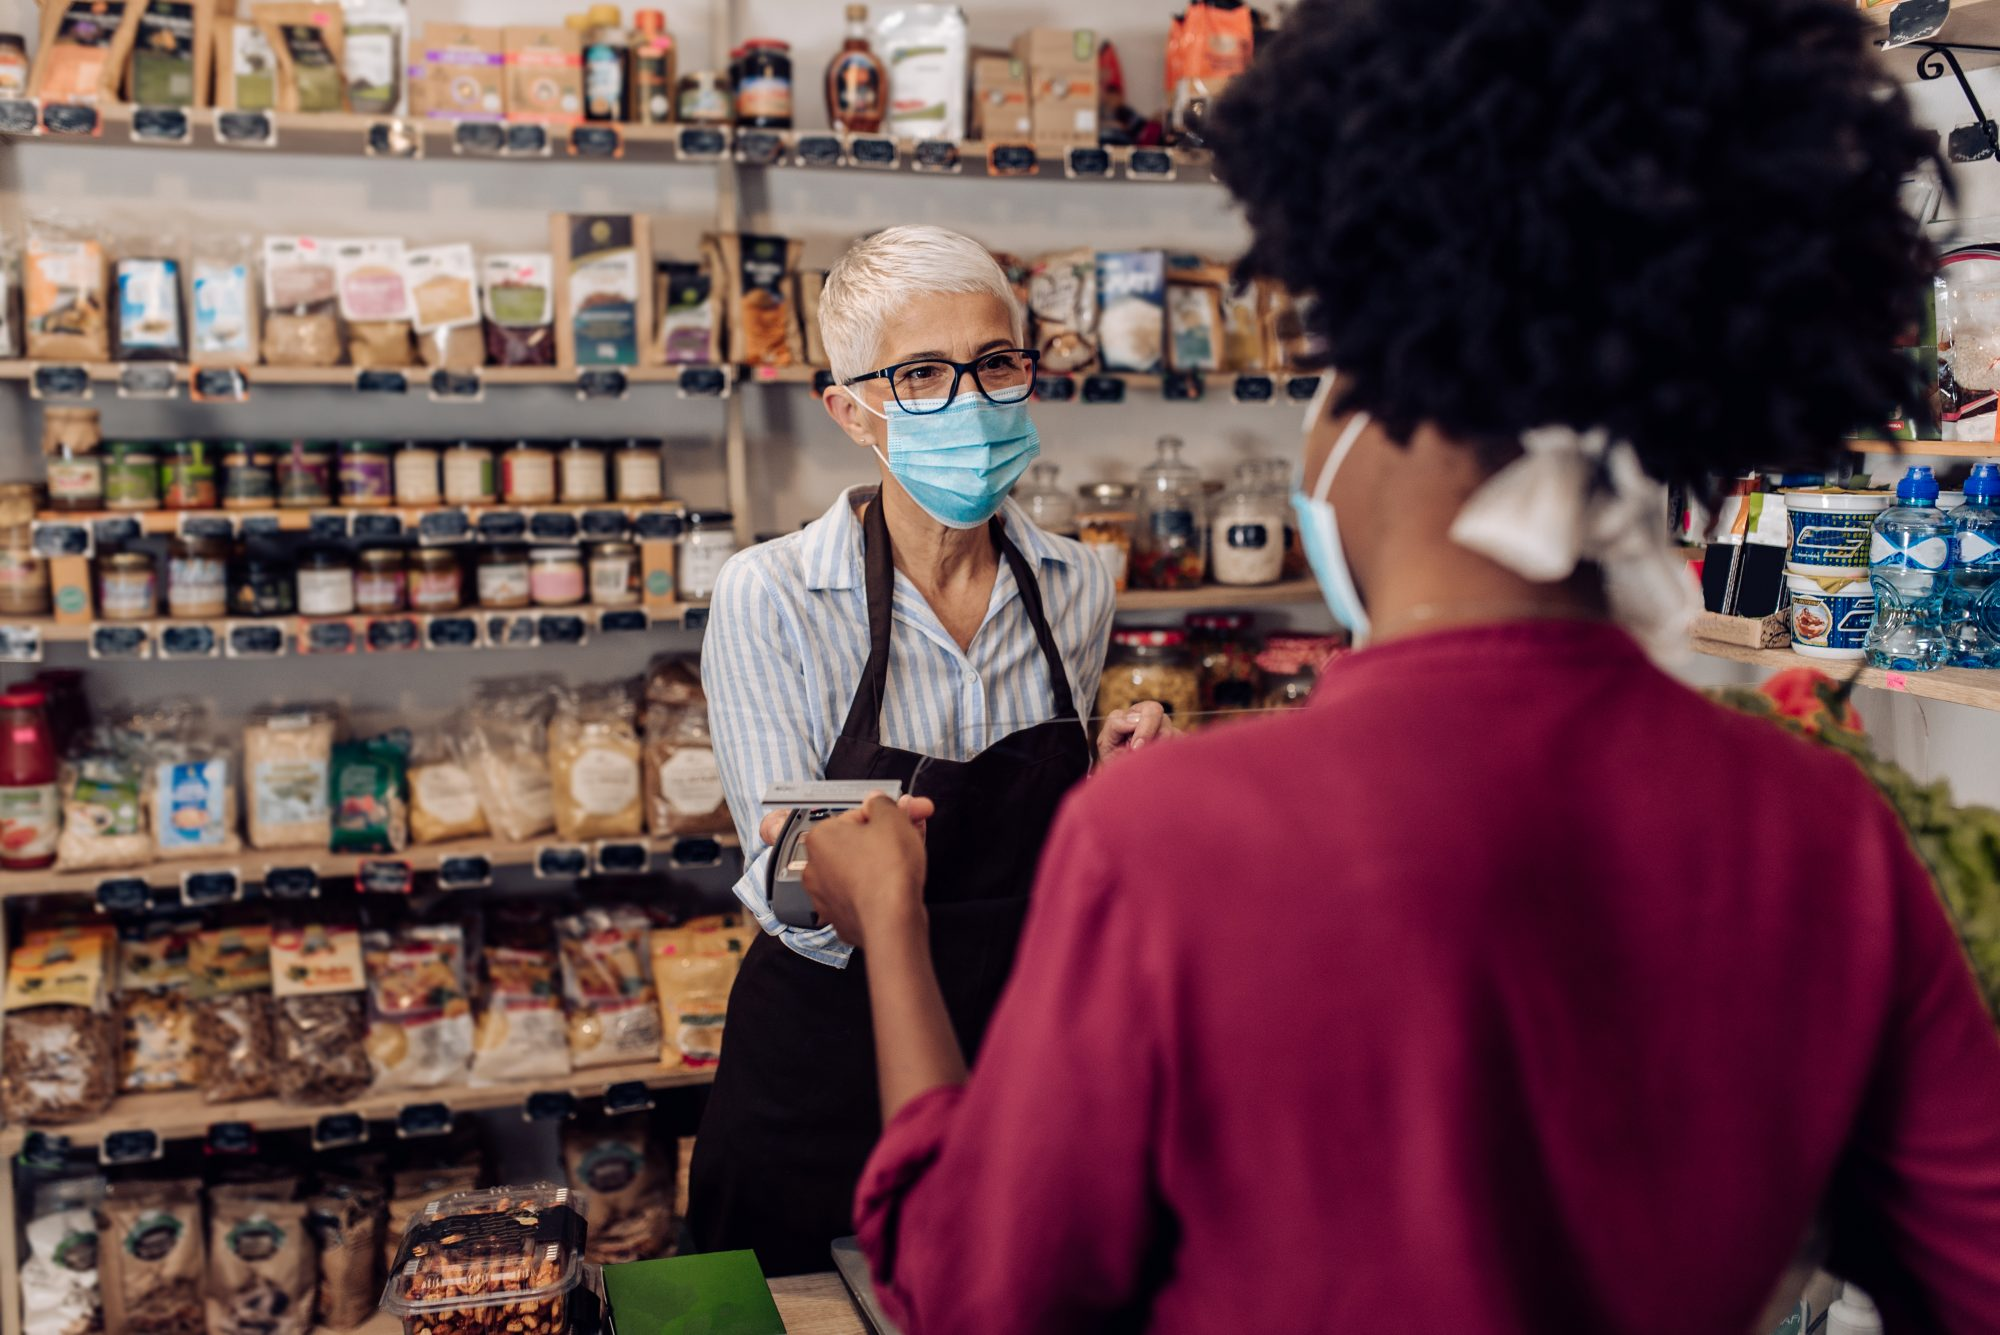 Buying items from small business wearing masks